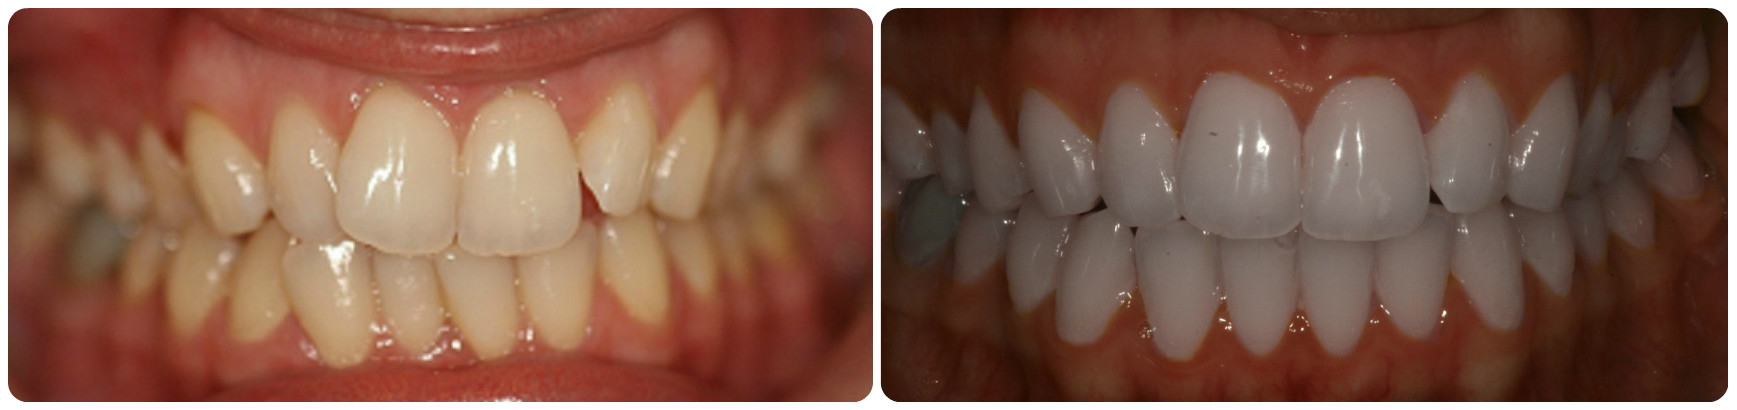 Lingual treatment before and after